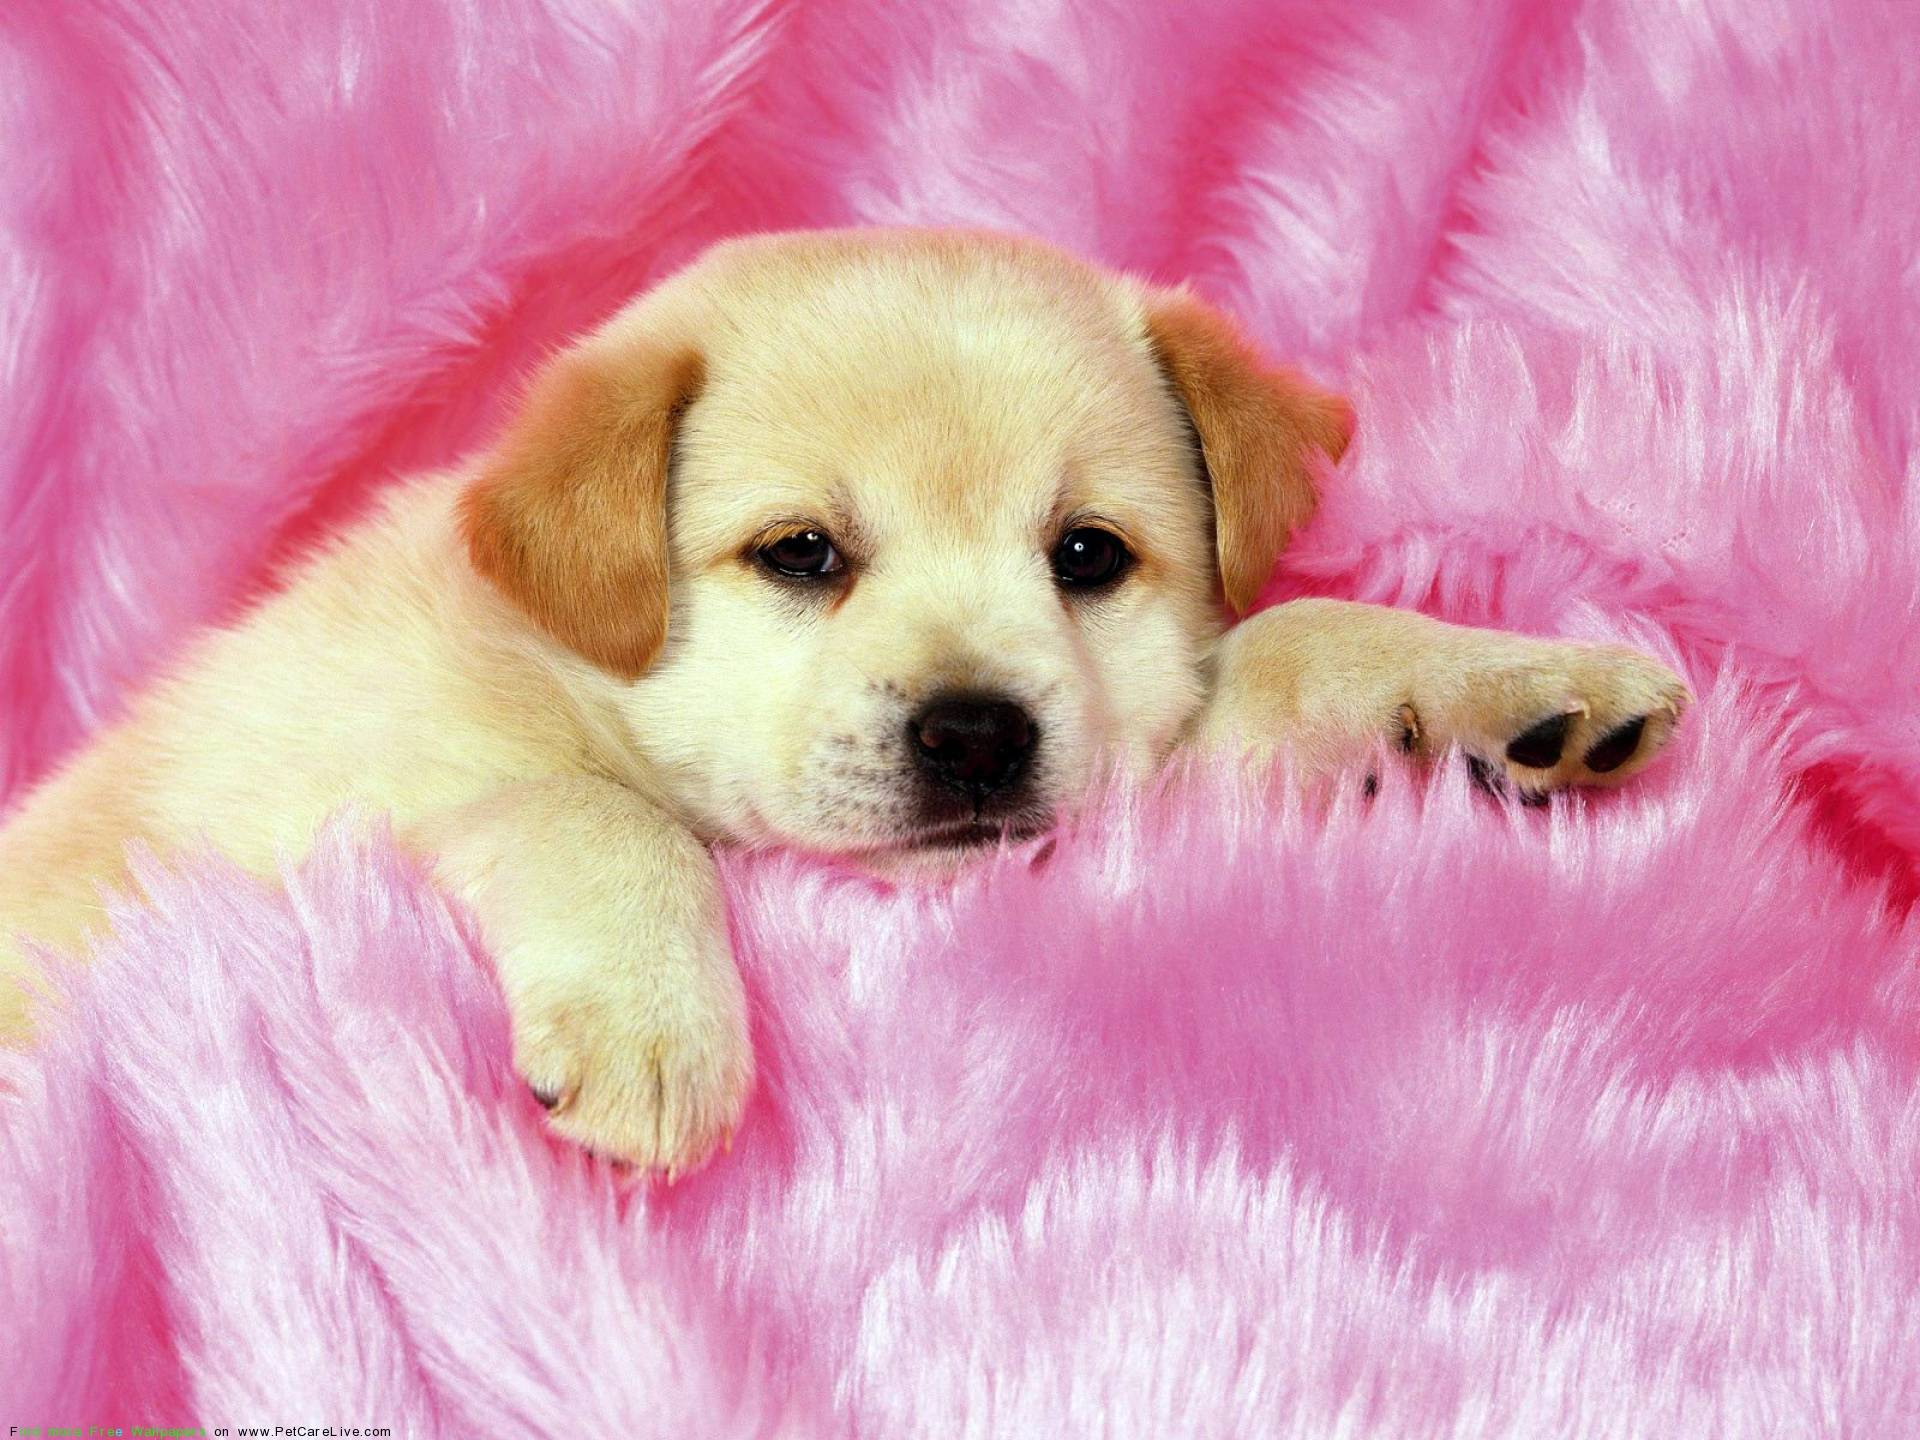 puppy dog wallpaper - photo #25